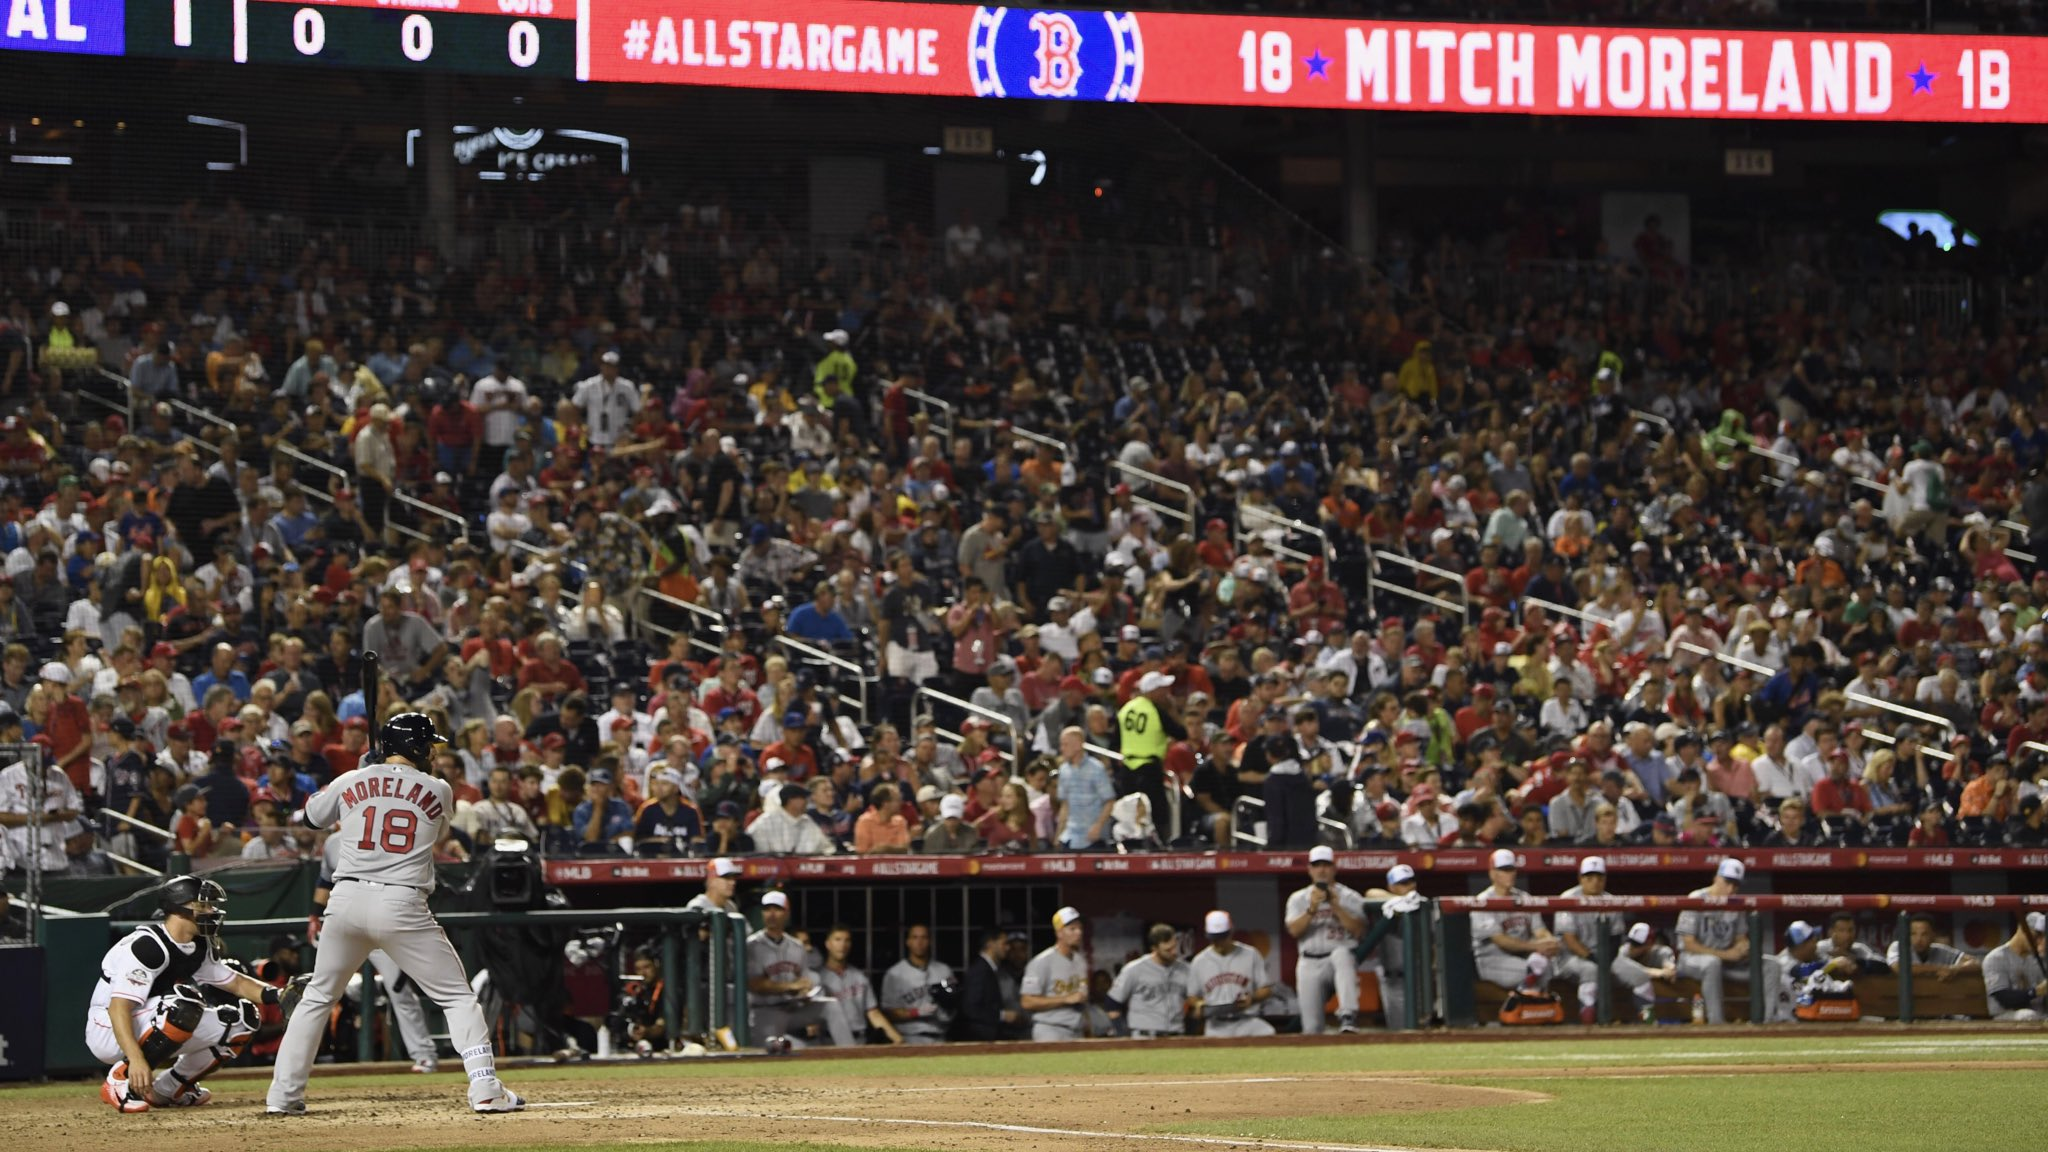 Mitch with a line-drive single! ��  #AllStarGame https://t.co/QqvR6mlFyn